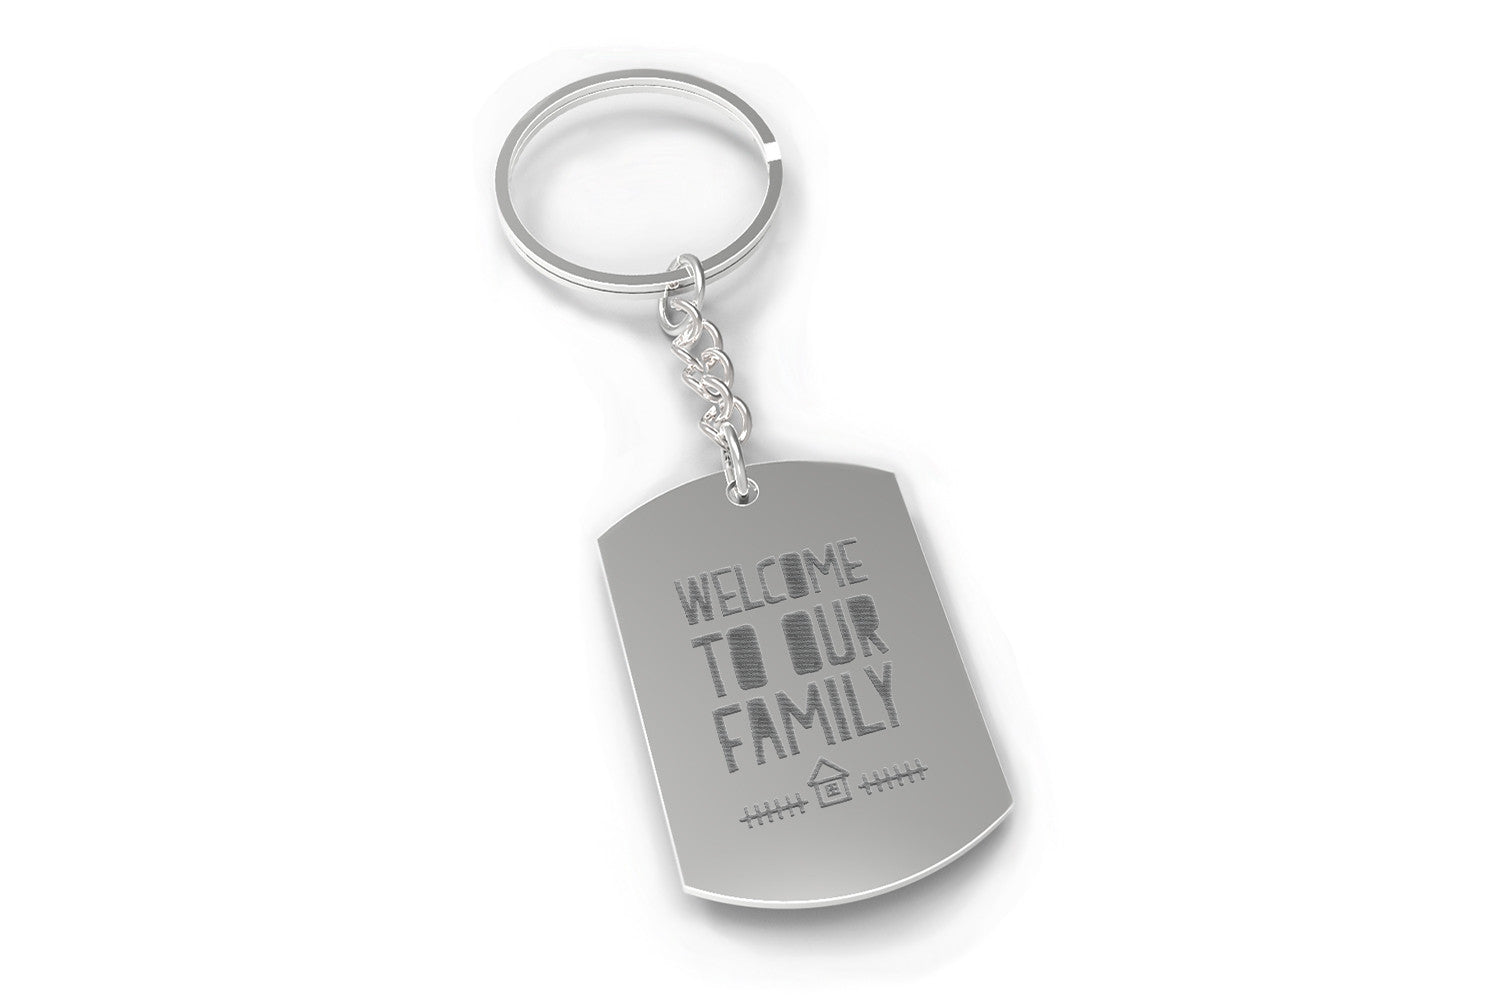 Welcome To Our Family Key Chain For Daughter In Law Or Son In Law